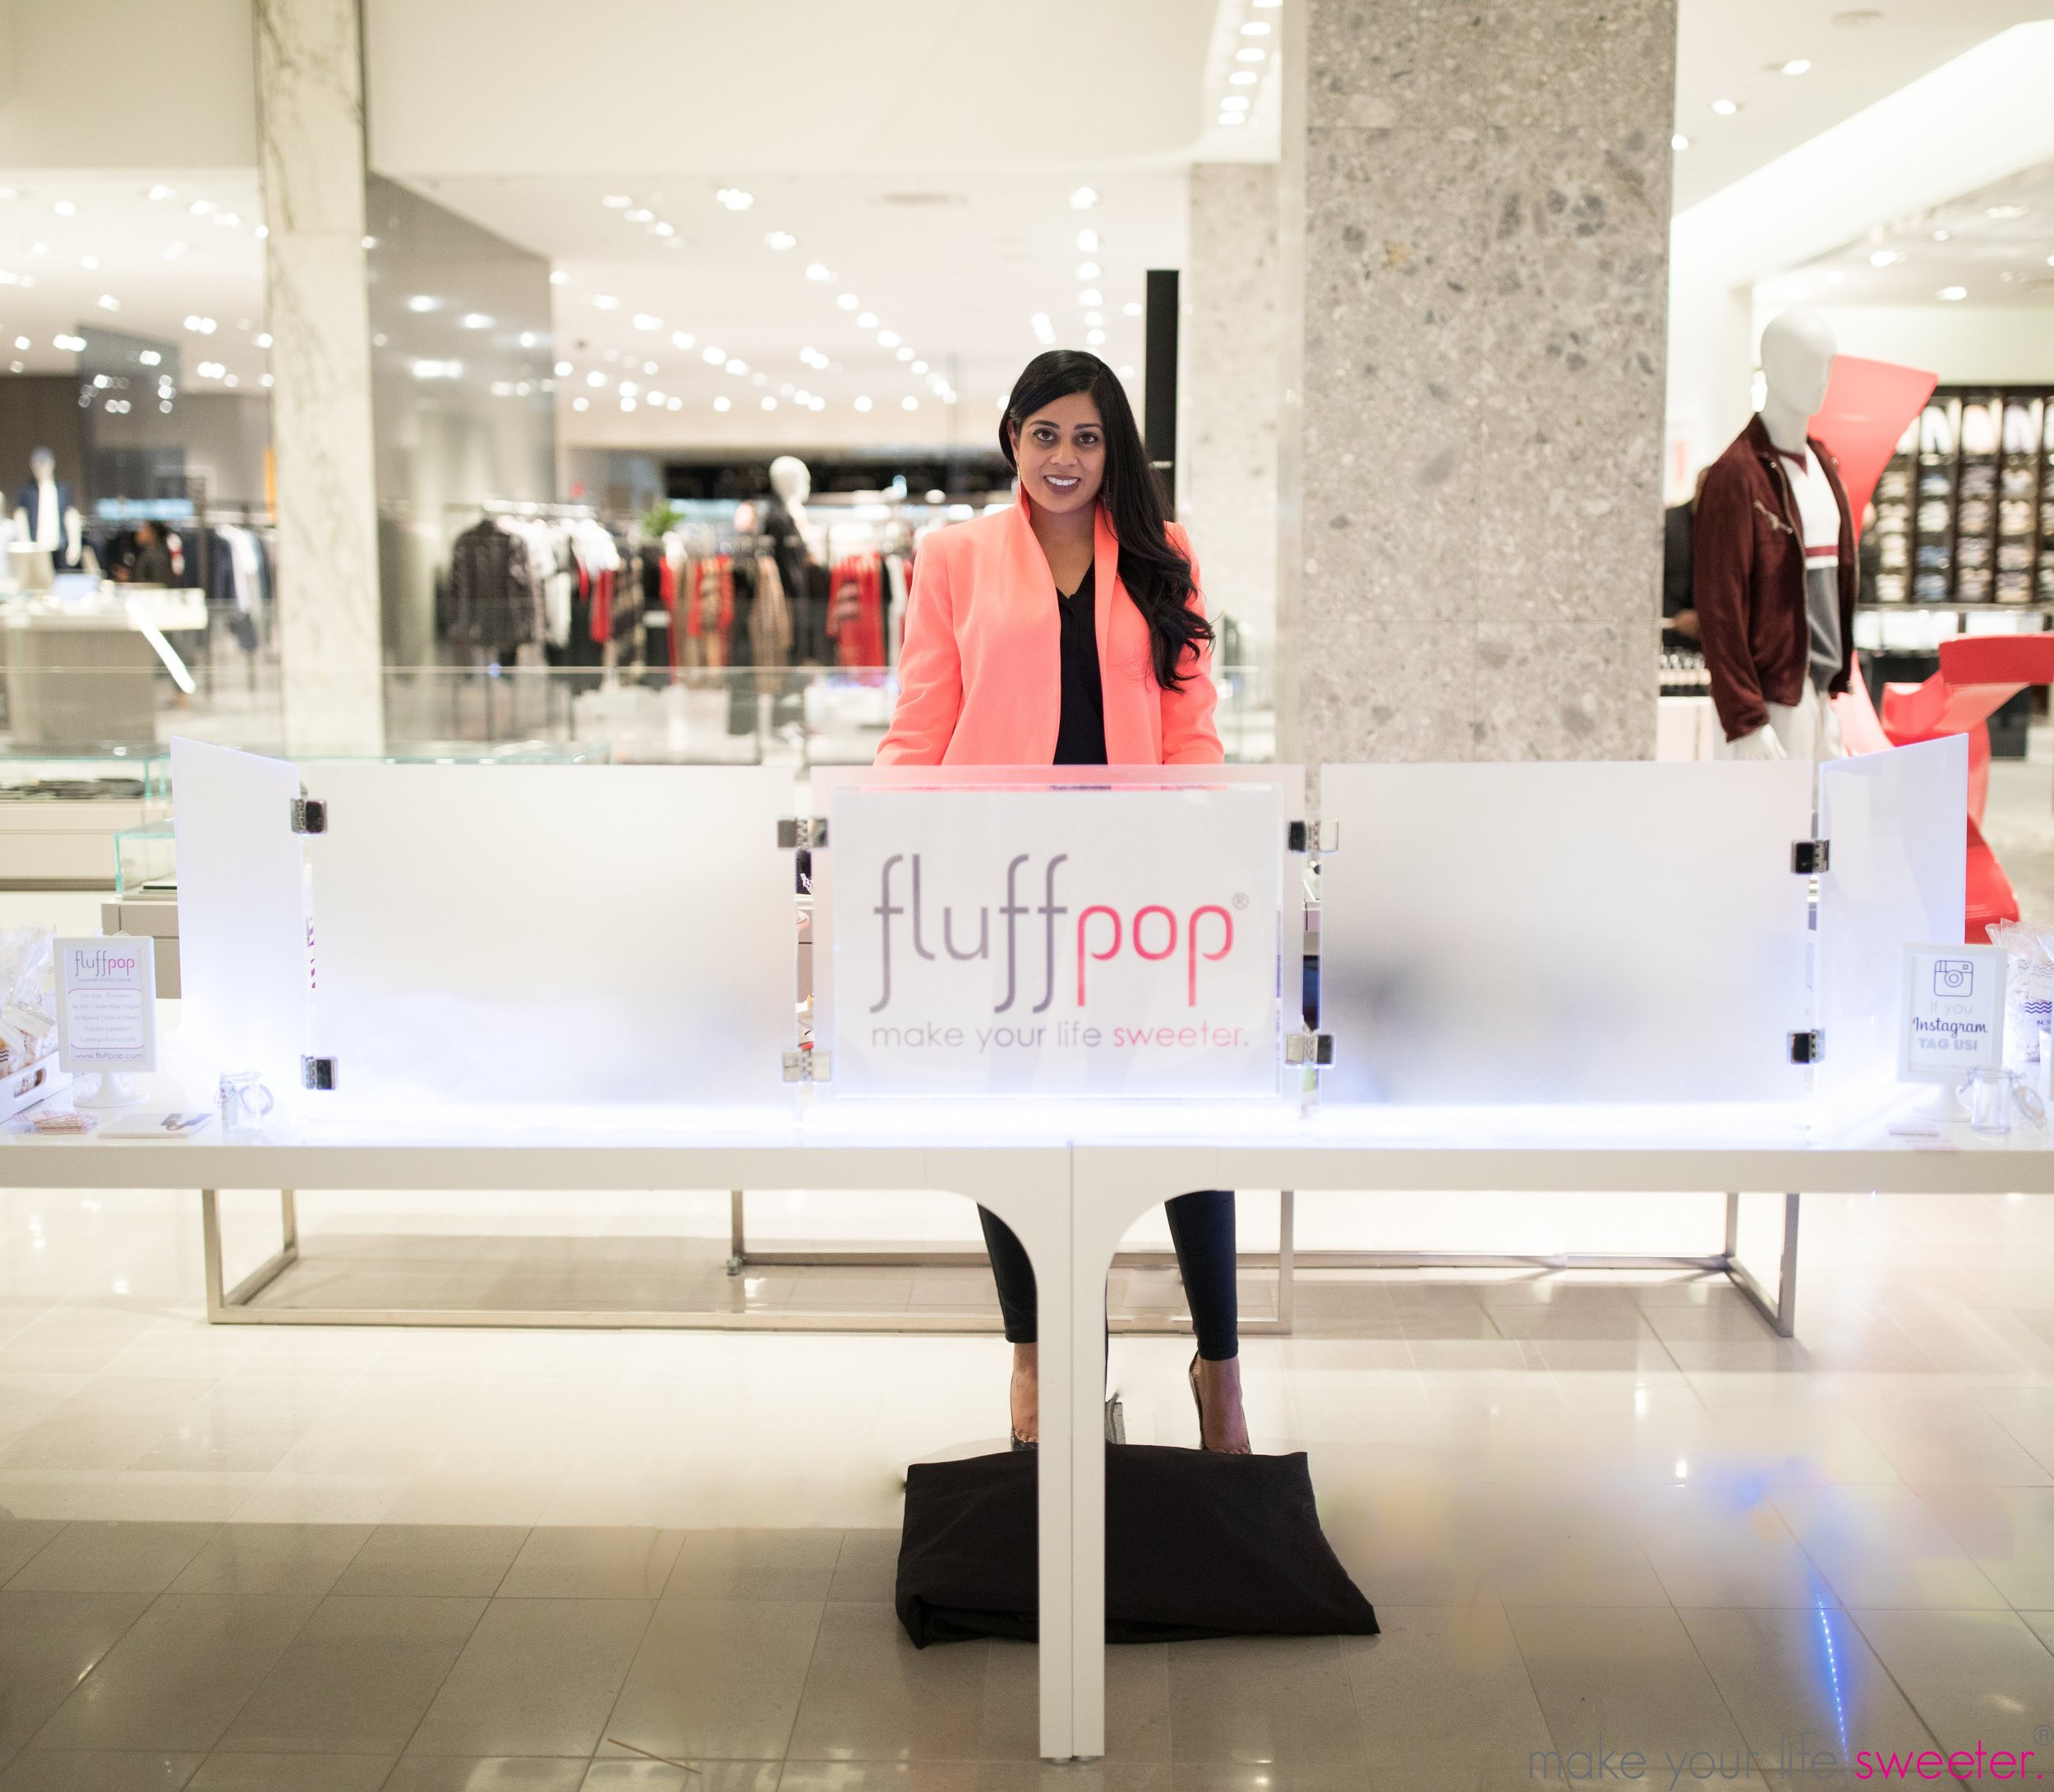 Make Your Life Sweeter Events - Fluffpop artisanal miniature cotton candy - Neiman Marcus Hudson Yards